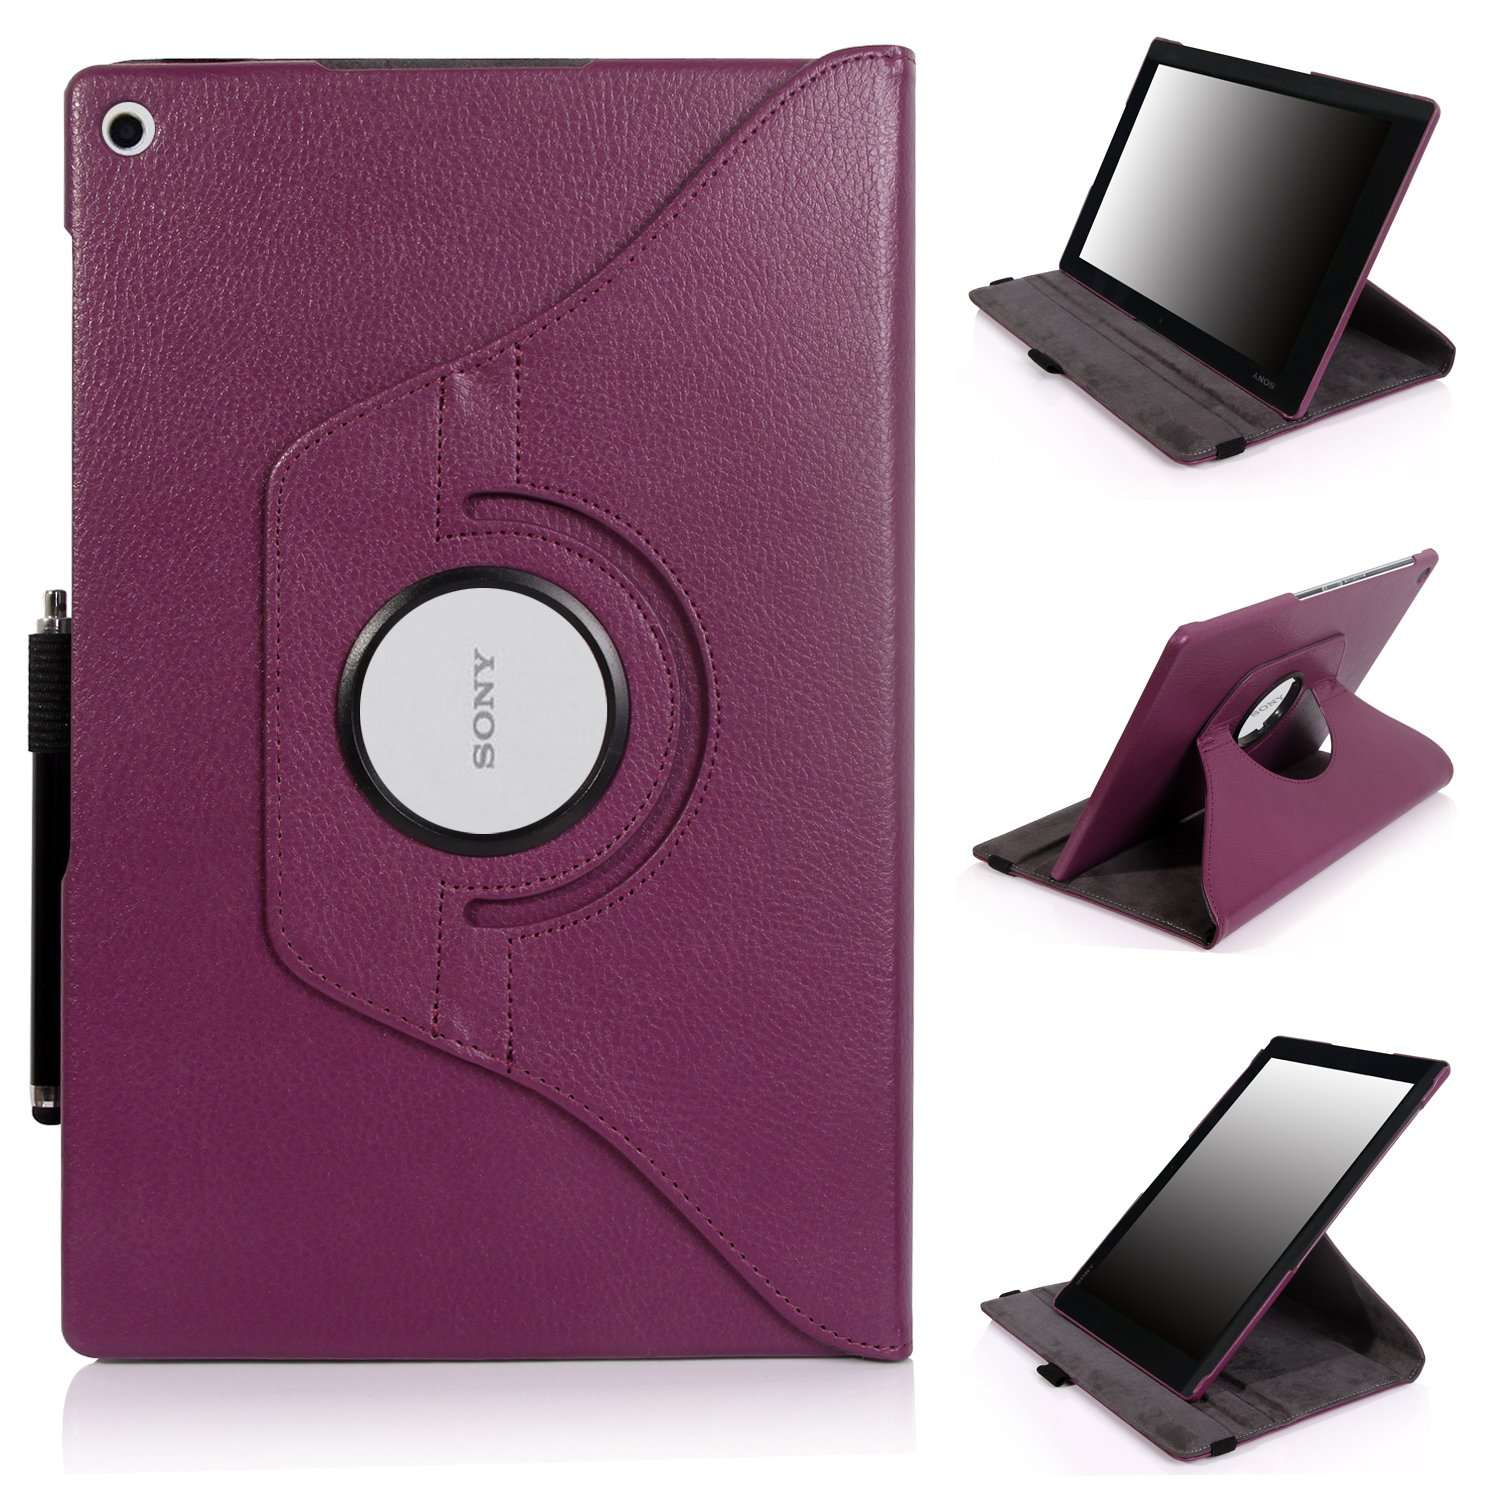 E LV 360 rotating Lightweight Case Cover stand for Sony Xperia Z2 (2014) 10.1 inch (Android Tablet) with 1 Stylus (Purple, Sony Xperia Tablet Z2)